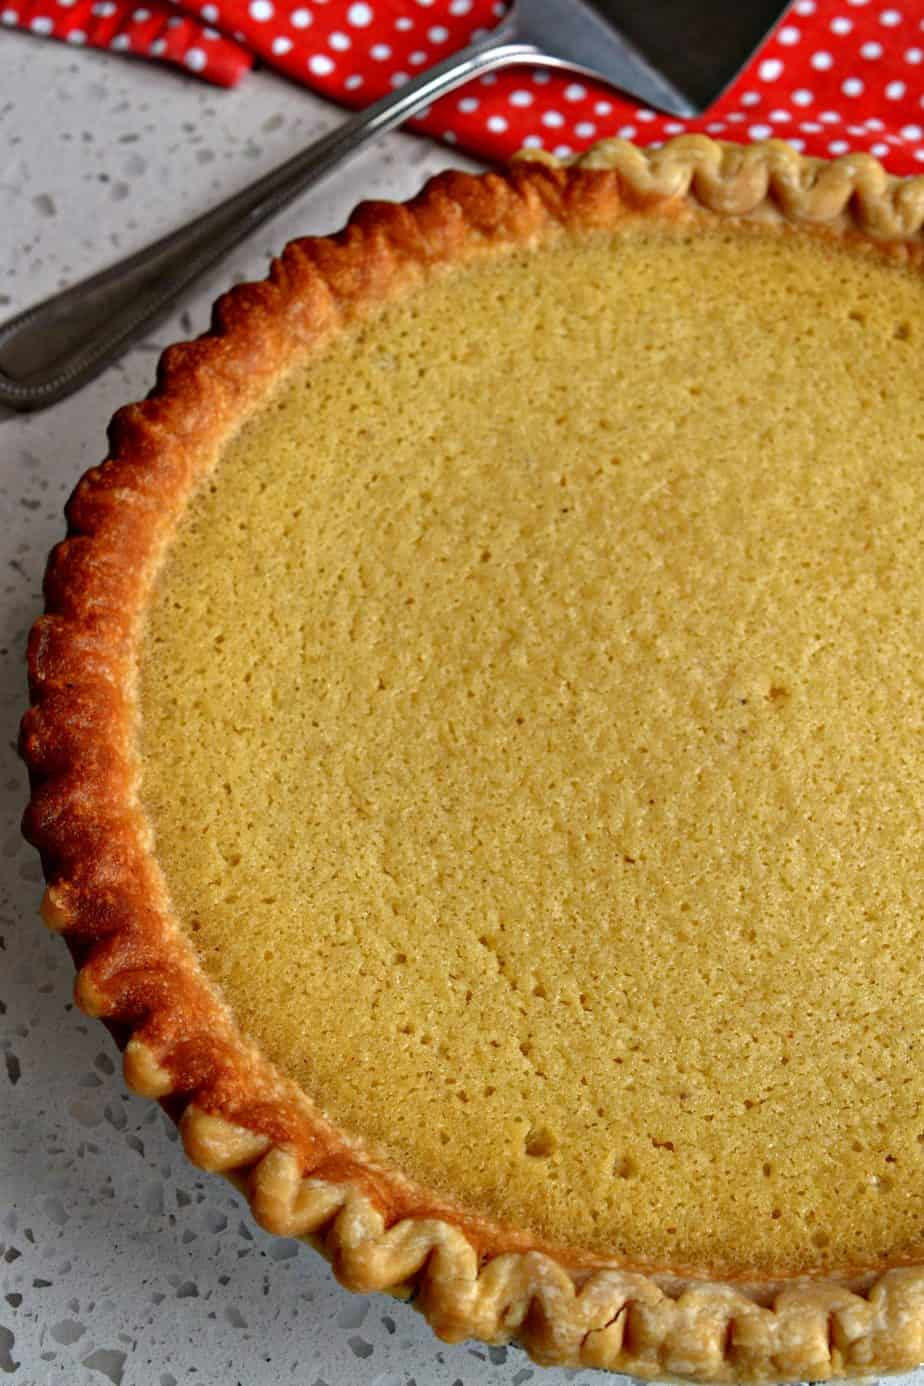 Sweet and creamy buttermilk pie is an easy pie to make for family gatherings, potlucks, or holidays